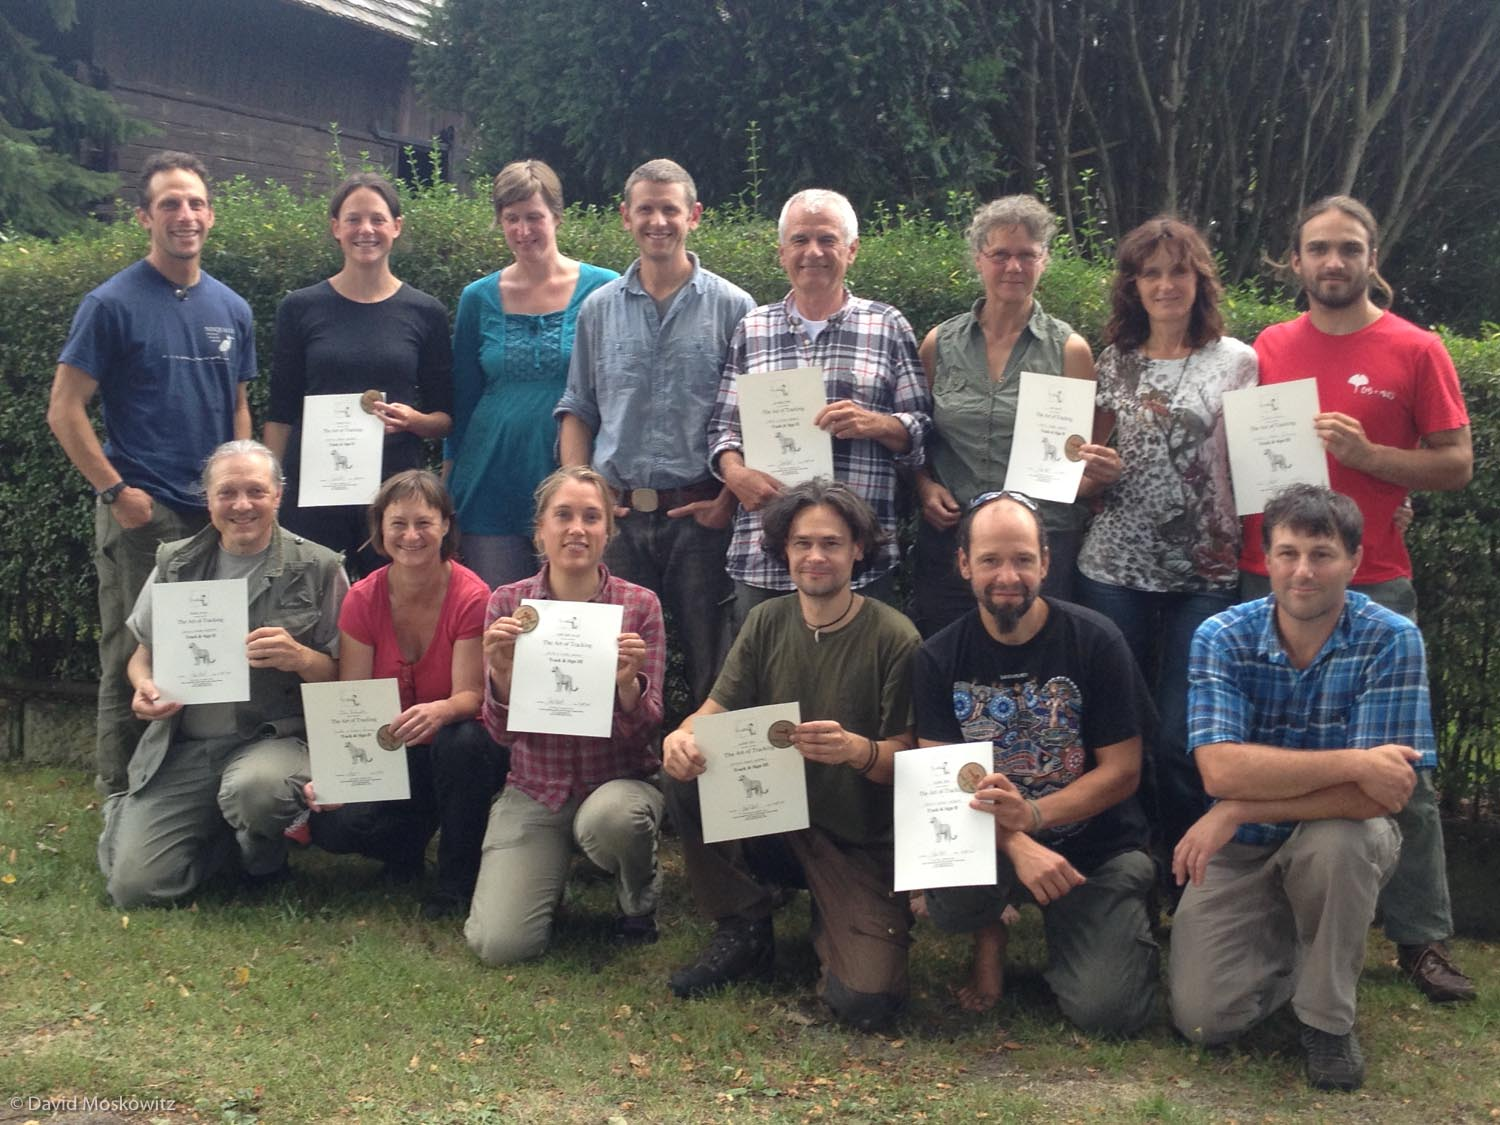 Numerous certificates where awarded in all 4 countries we visited including everyone who participated in the evaluation in Germany, pictured here. Congratulations to everyone. We will be finding an online home for the names and certification levels of folks certified in Europe through Cybertracker Conservation shortly. Stay tuned!